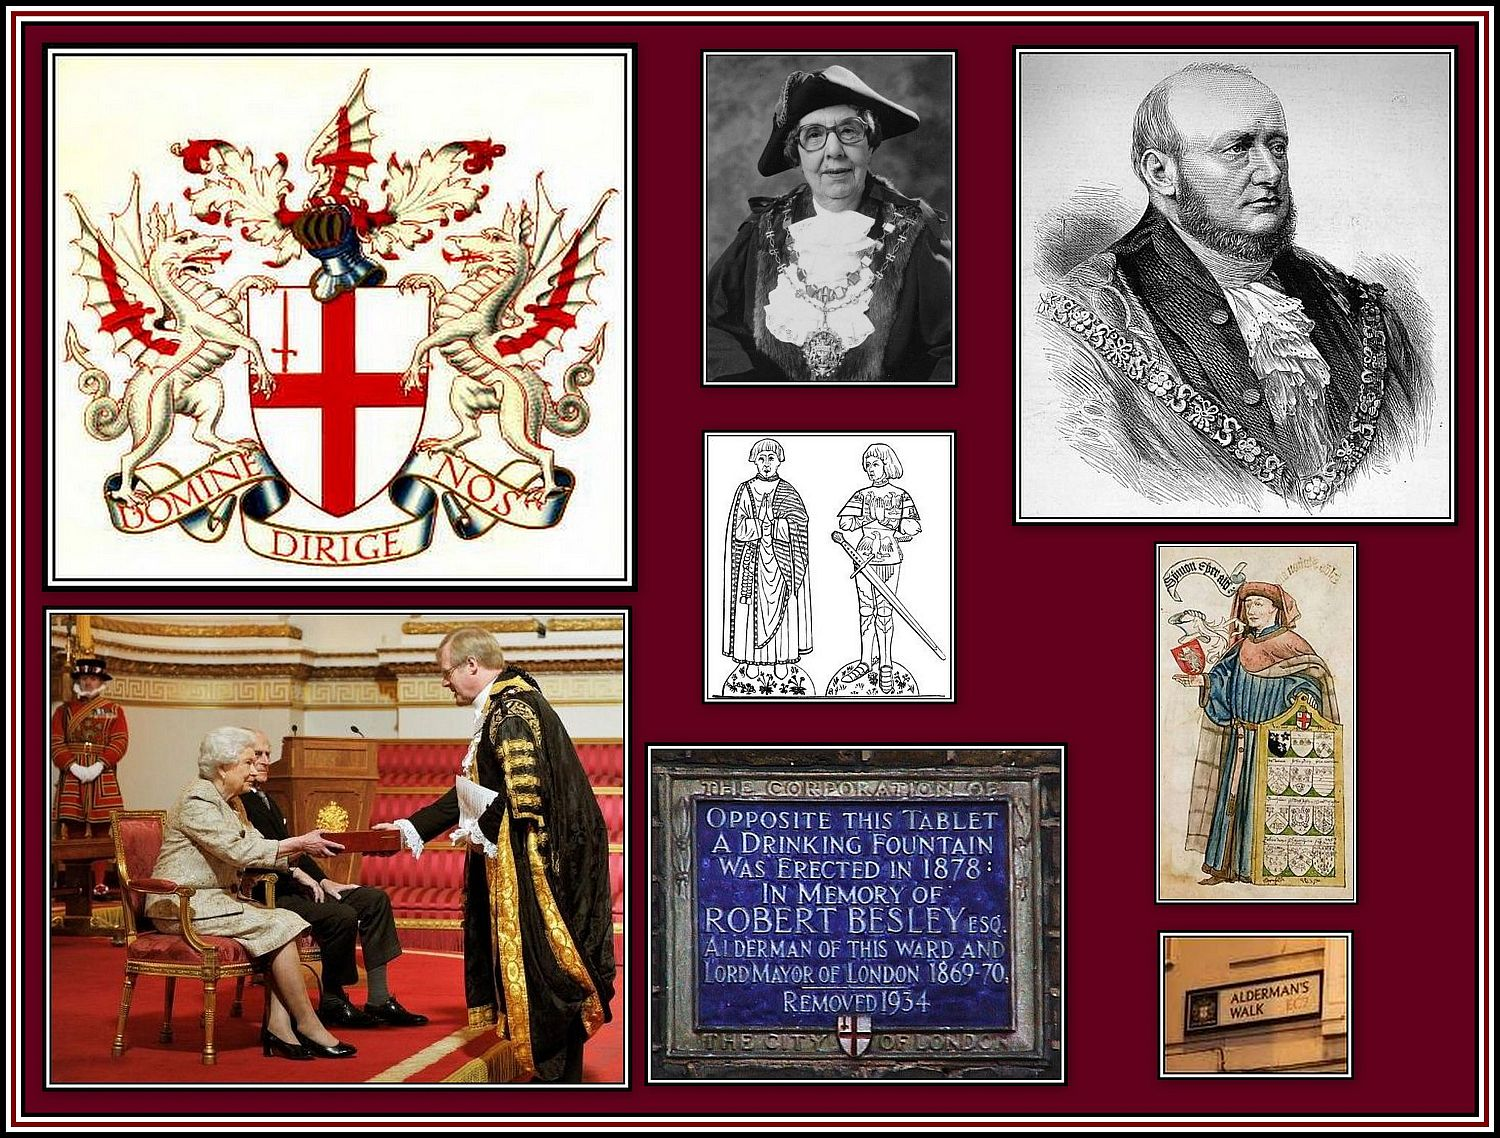 ALDERMEN (including women) OF THE CITY OF LONDON Top Left: The coat of arms of the City of London; Bottom Right: The Lord Mayor of the City of London with the Queen; the Lord Mayor is required to serve as both an Alderman and a Sheriff before being eligible for this position